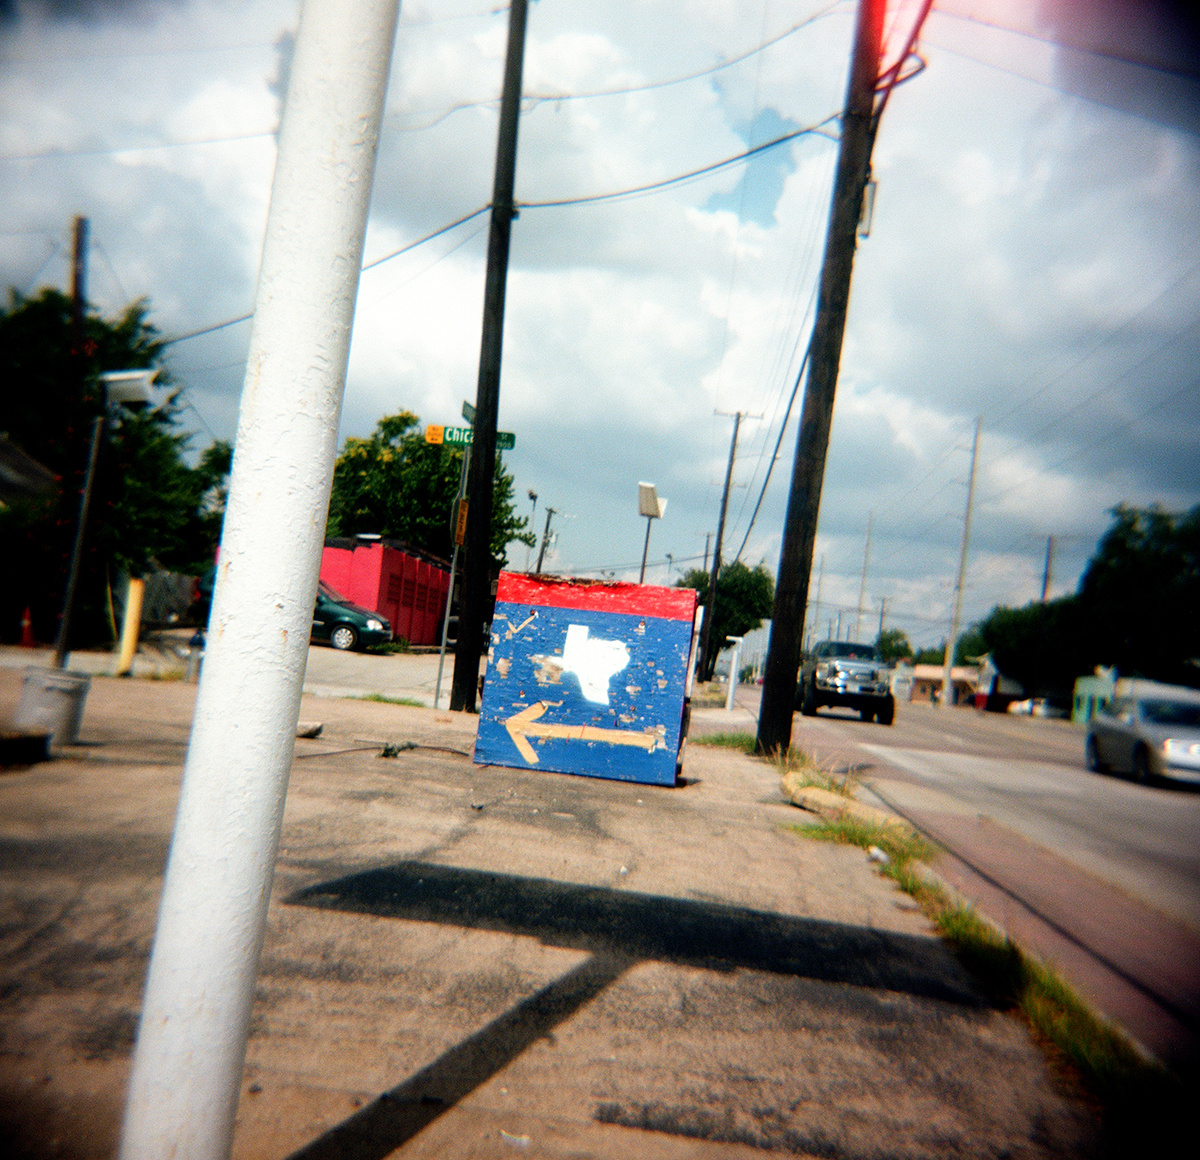 97247c63597b5d91-Almost_Texas_Singleton_left_behind.jpg